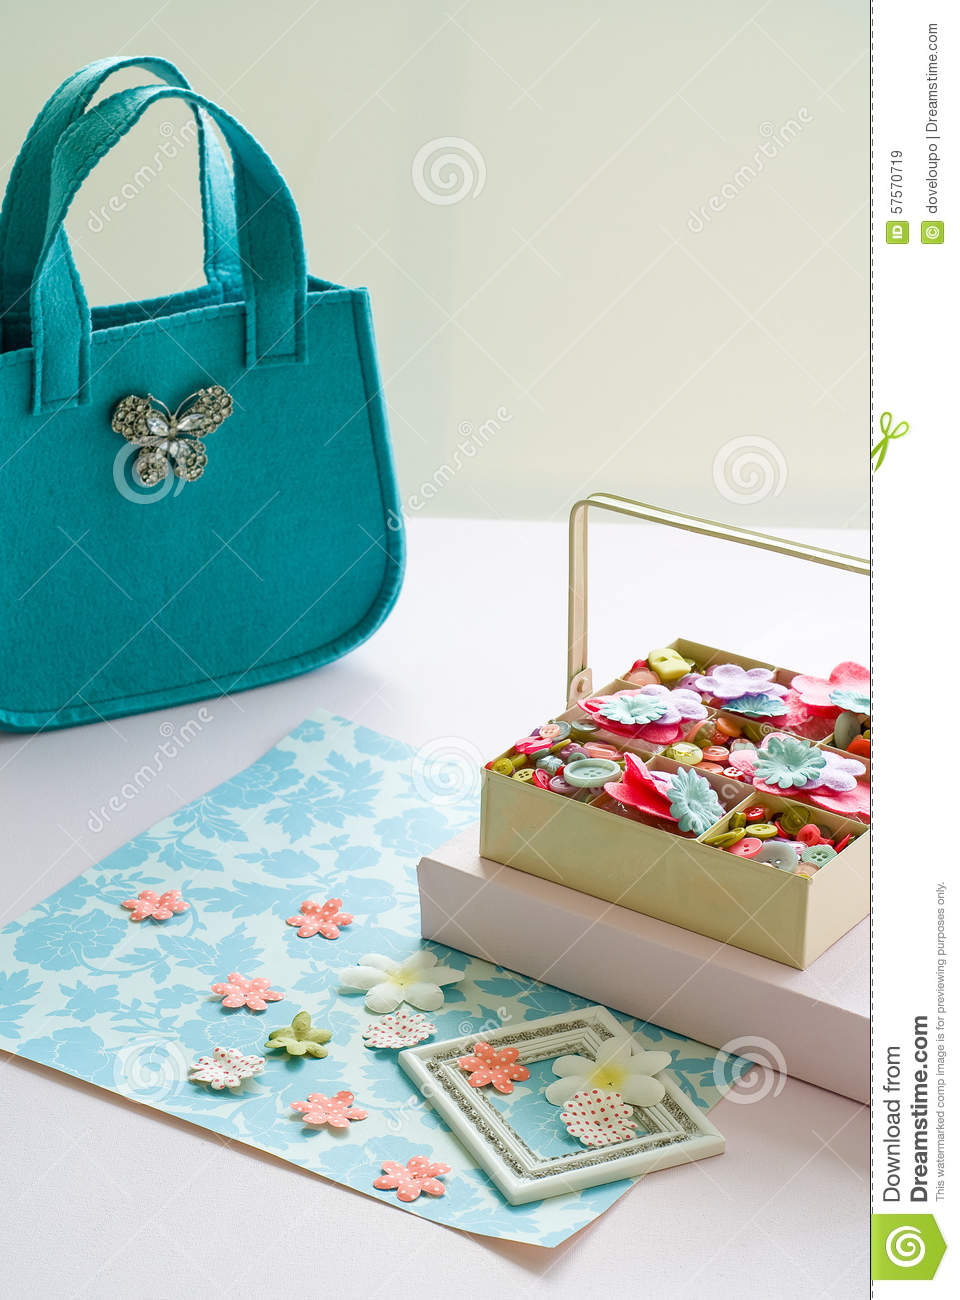 Craft objects stock illustration image 57570719 for Michaels crafts button maker